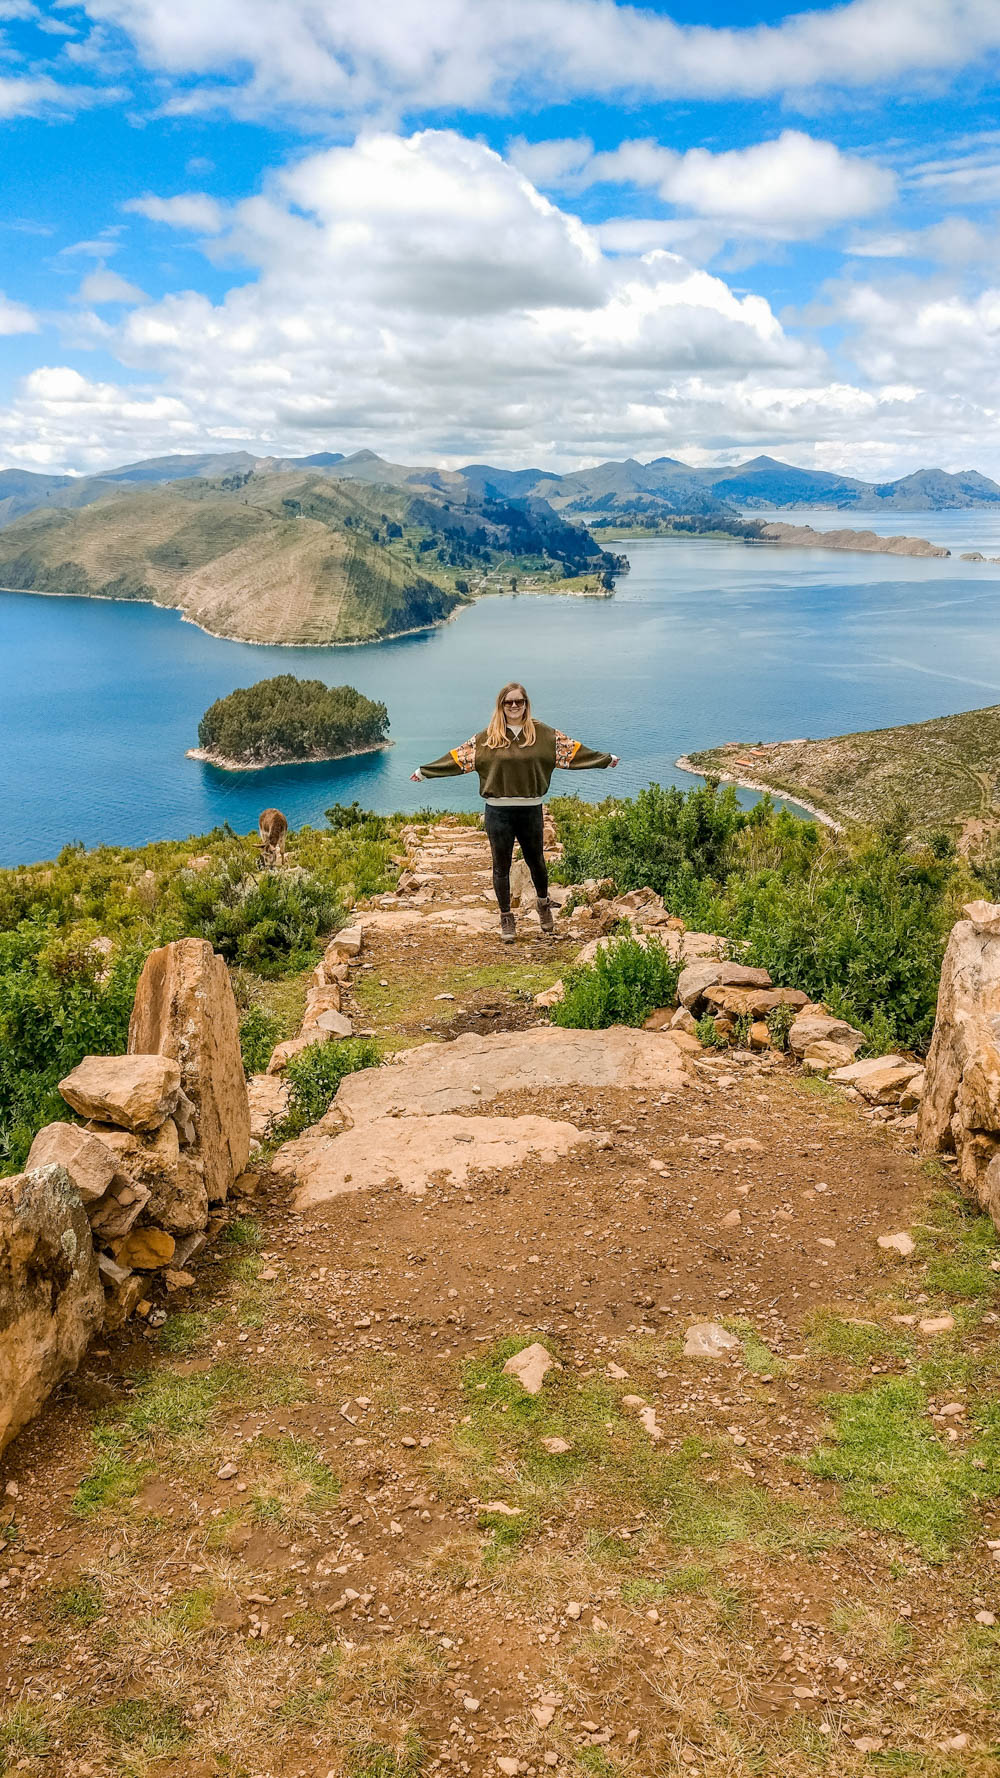 1-day trip to Isla del Sol - 6 reasons to add Copacabana and Lake Titicaca to your Bolivian itinerary | Aliz's Wonderland